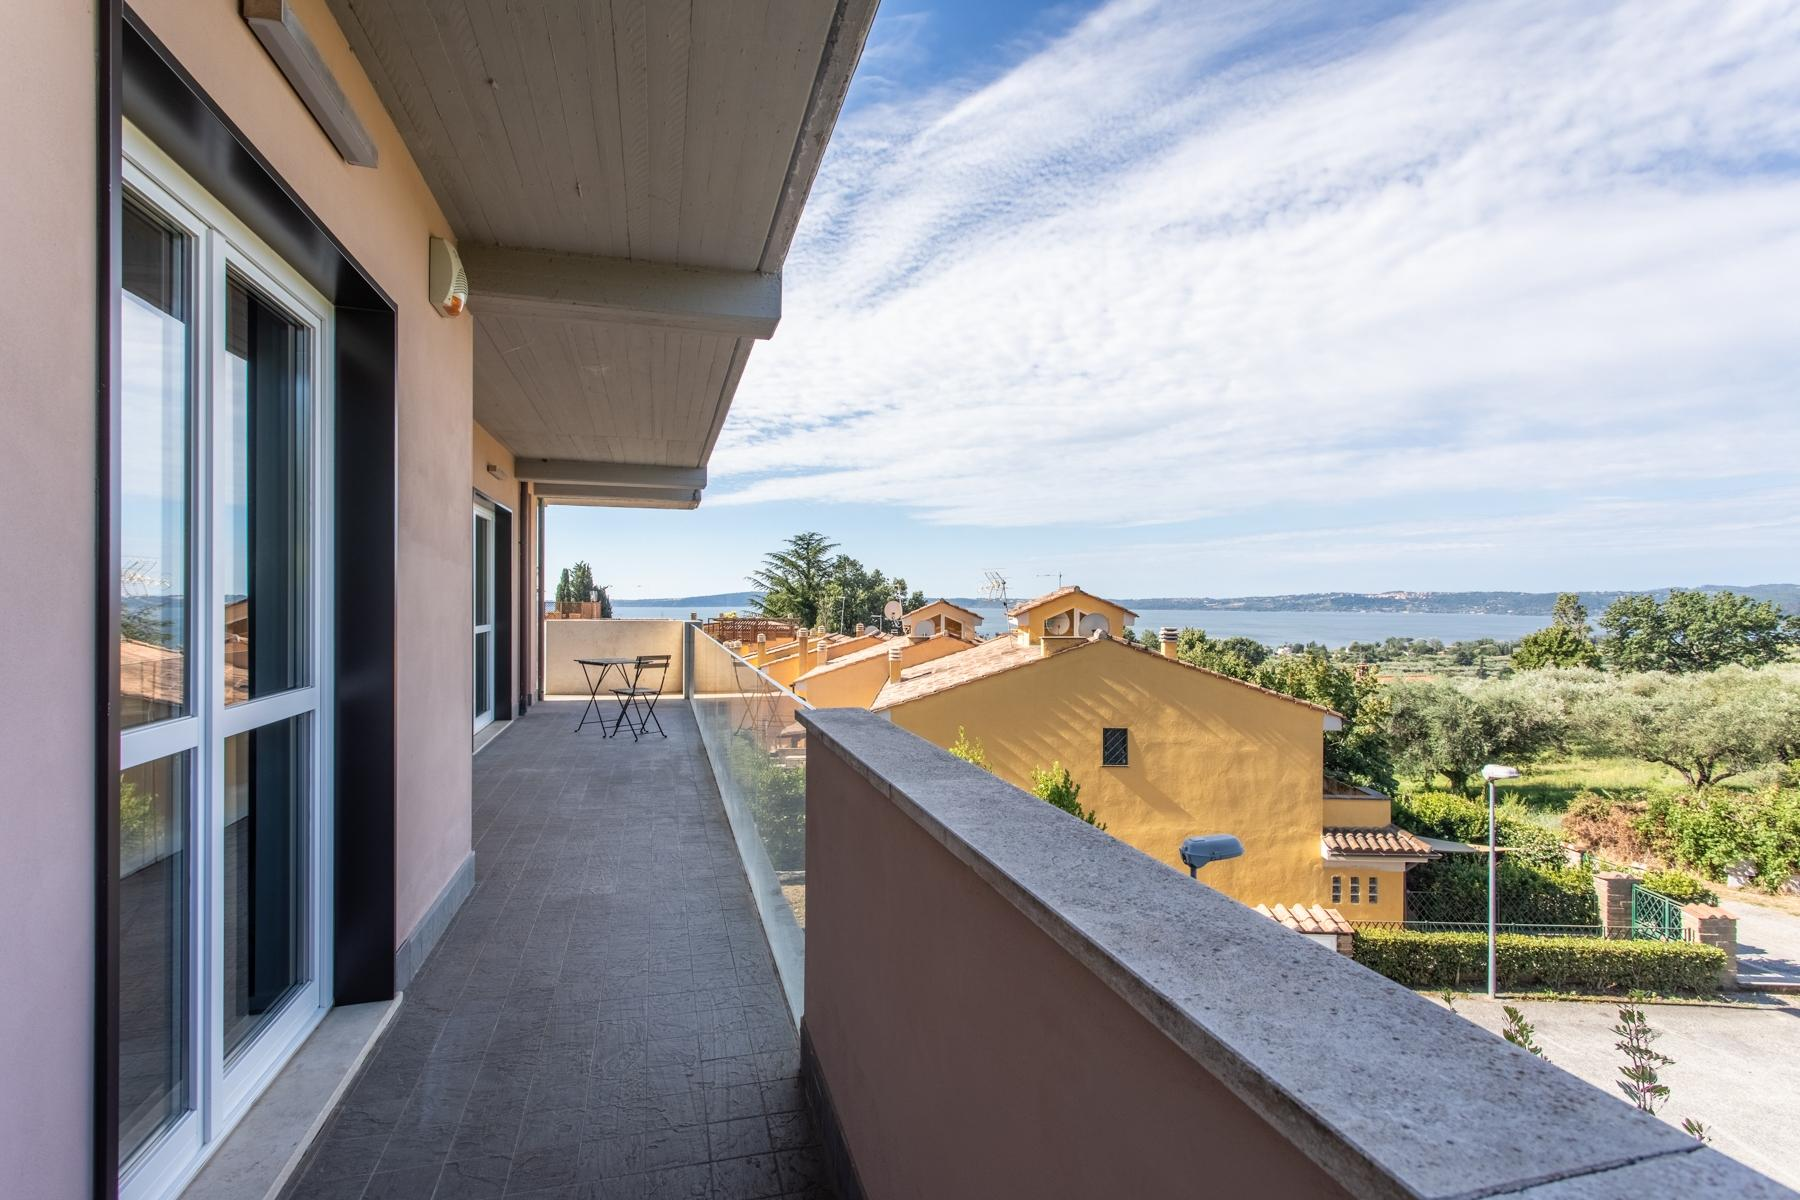 Front Lake Renovated apartment in Trevignano - 8